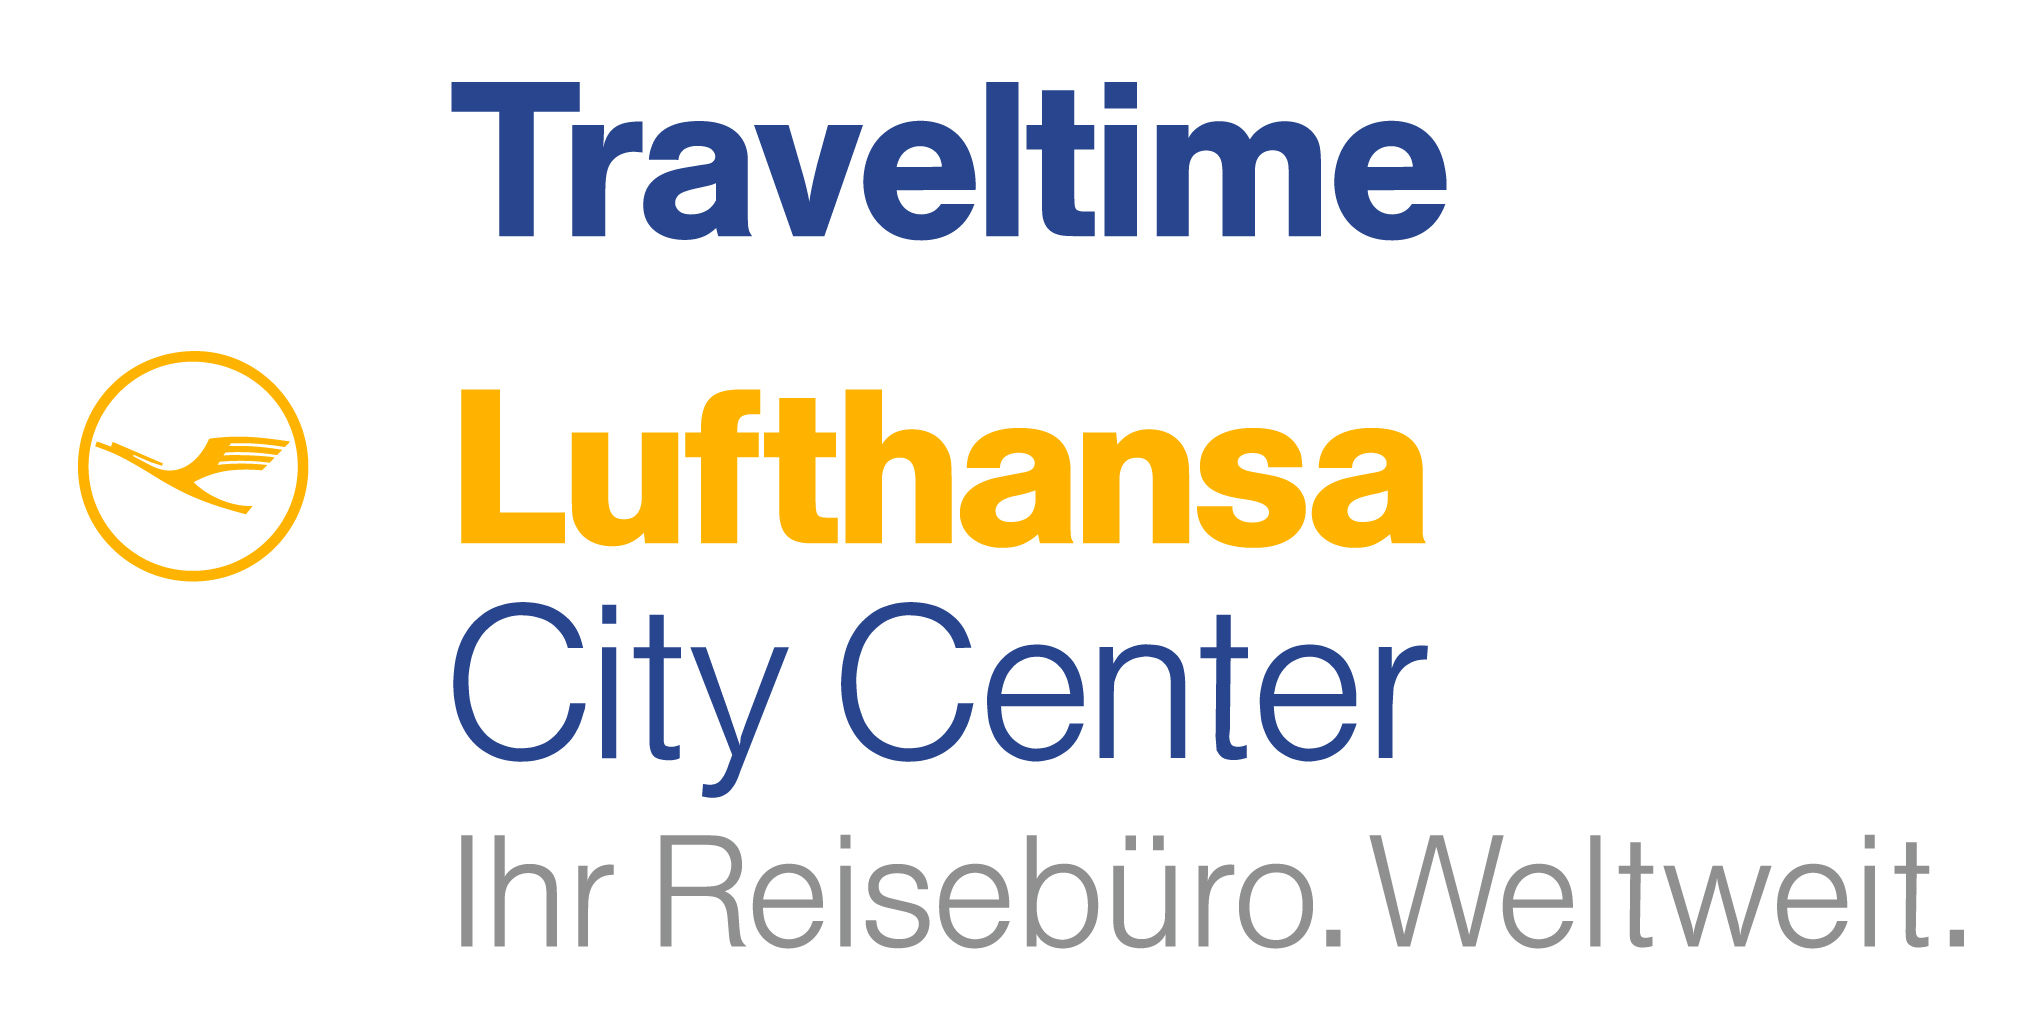 Traveltime Lufthansa City Center